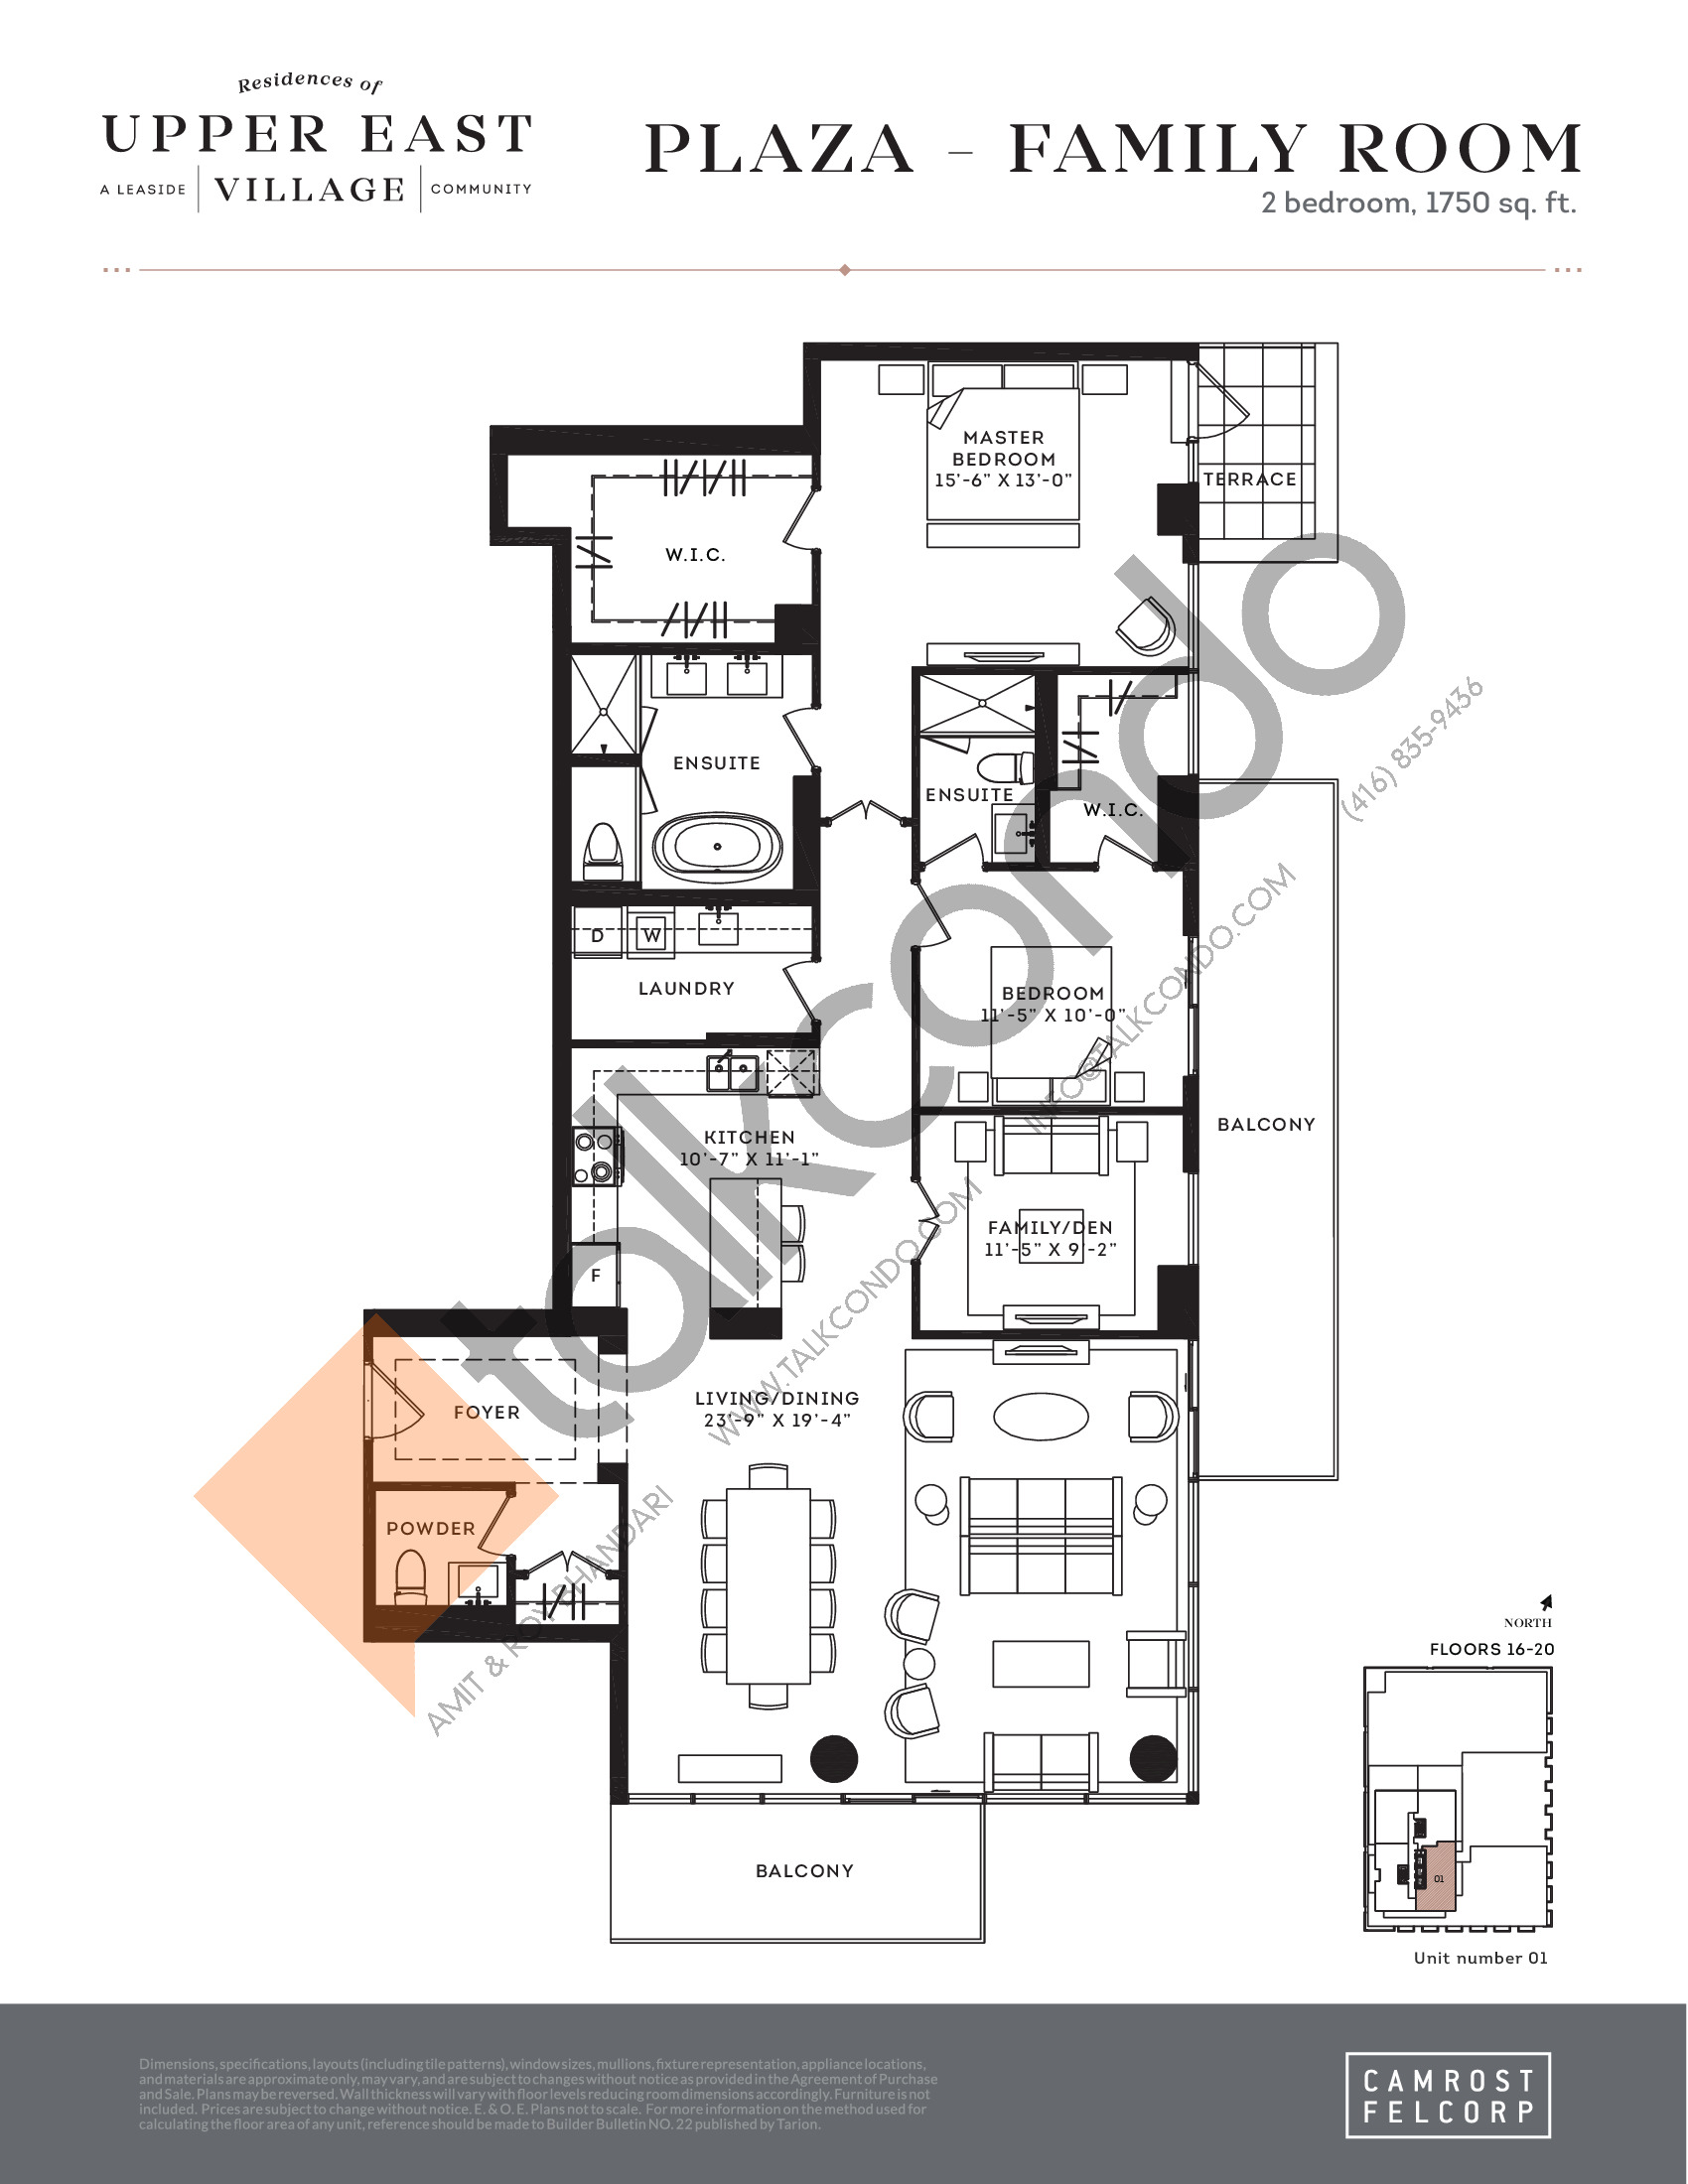 Plaza - Family Room Floor Plan at Upper East Village Condos - 1750 sq.ft